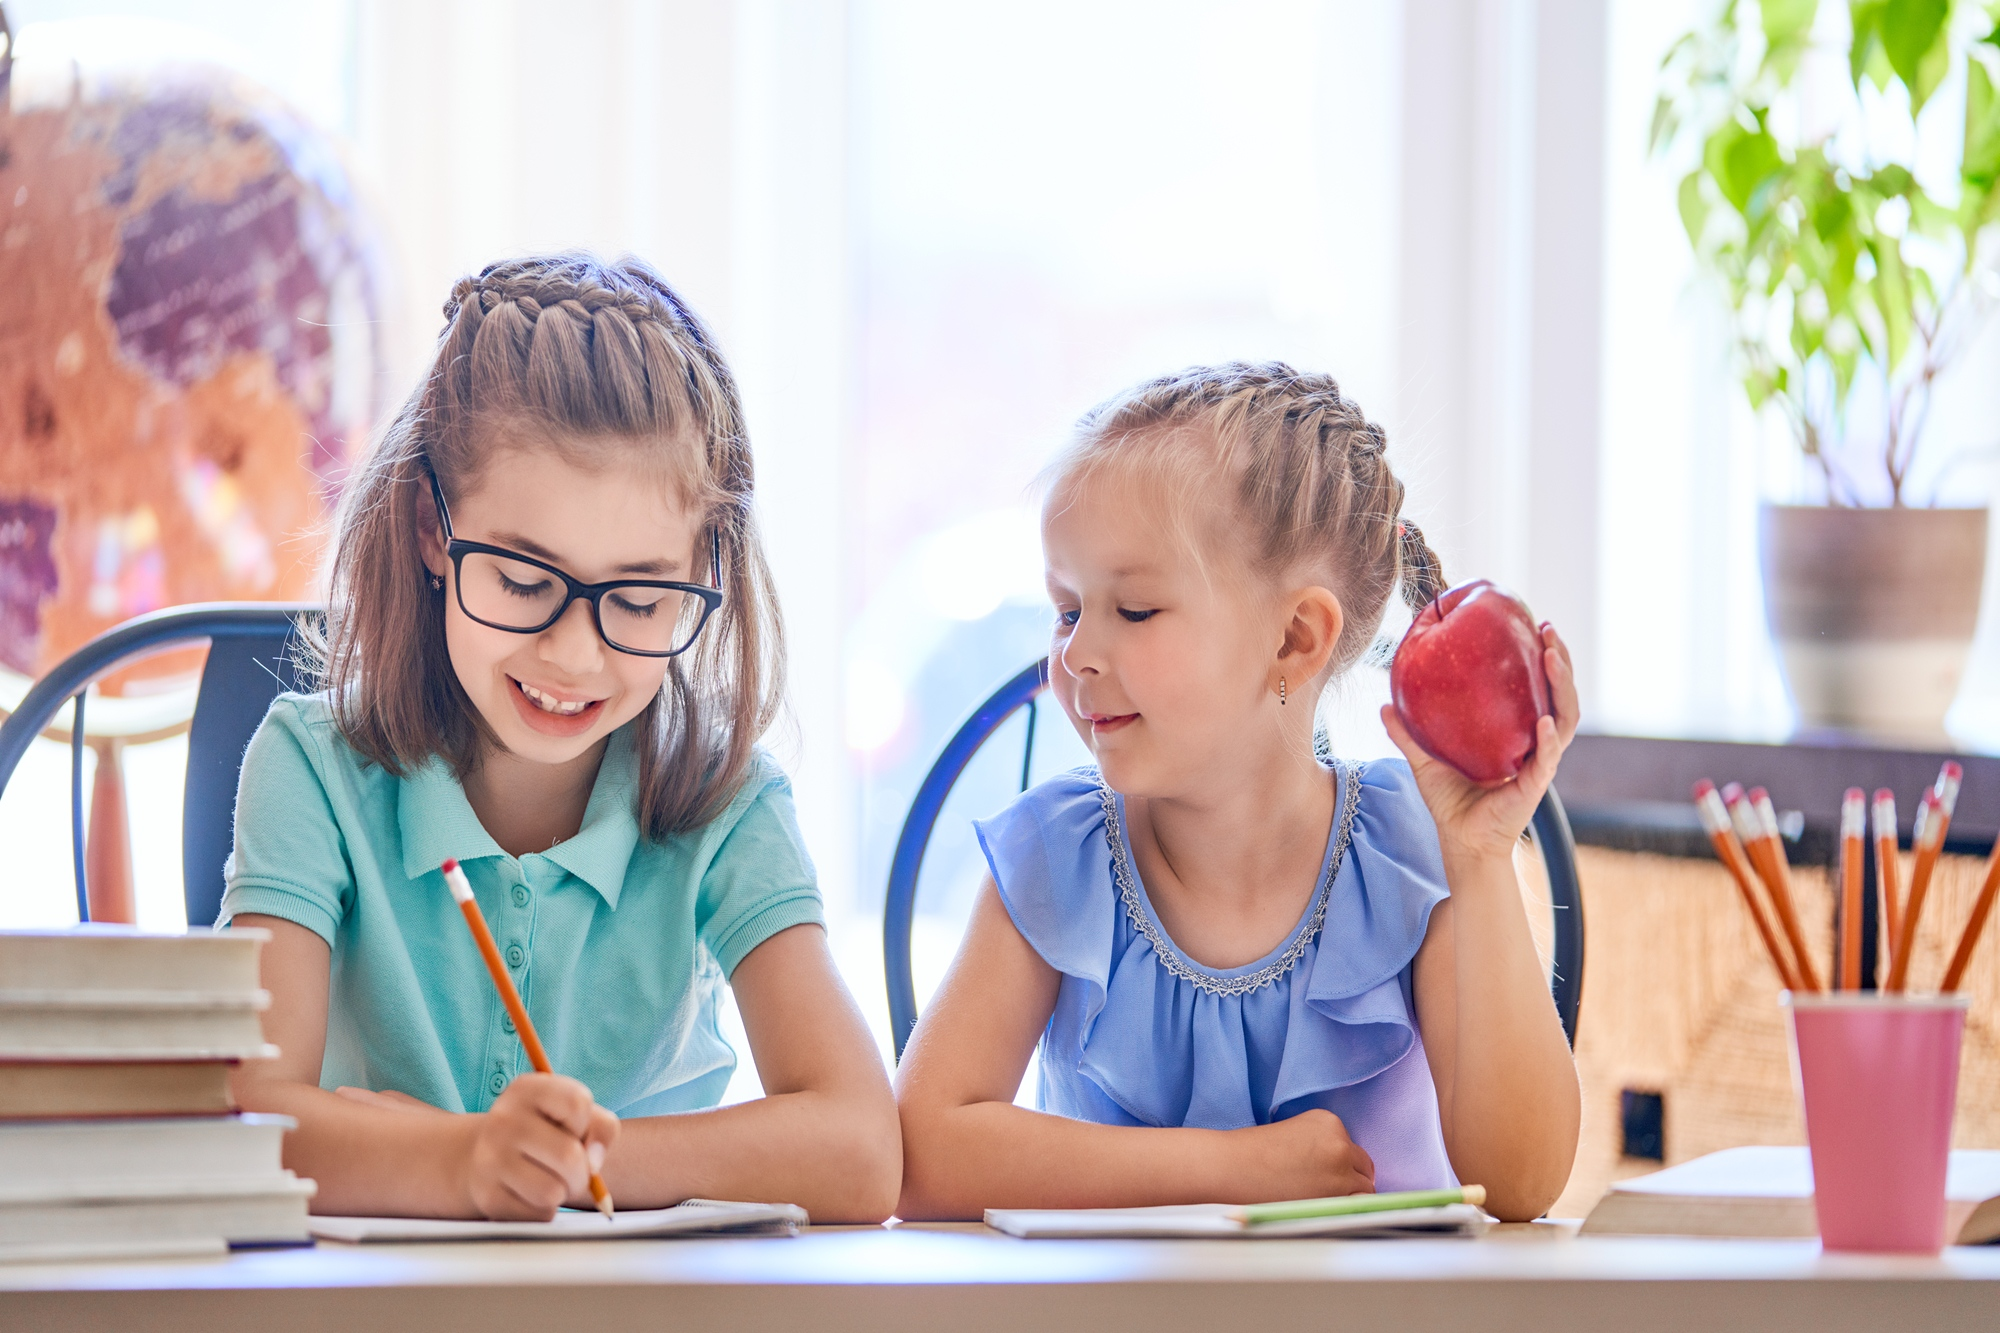 Back to school! Happy cute industrious children are sitting at a desk indoors. Kids are learning in class.